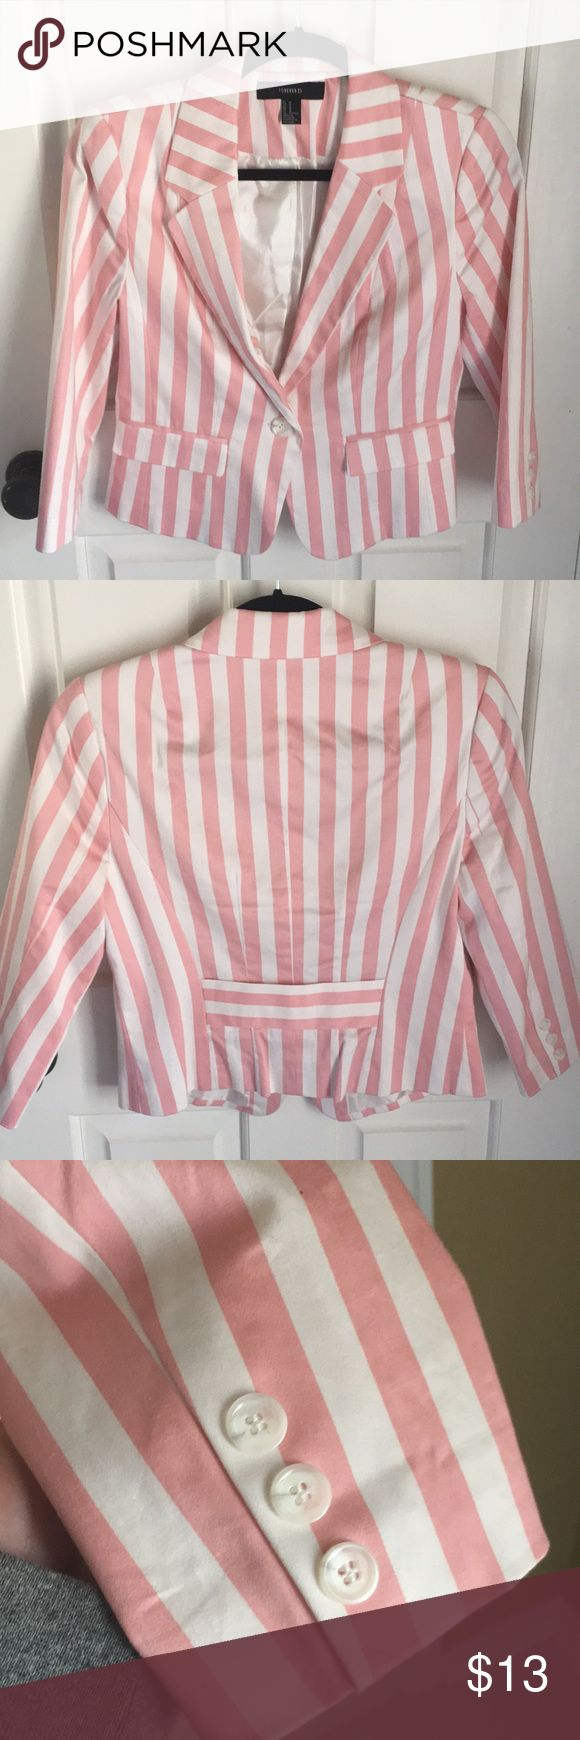 Forever 21 White and Light Pink Blazer Size medium - slightly cropped formal Blazer. WORN ONCE - LIKE NEW CONDITION. Forever 21 Jackets & Coats Blazers